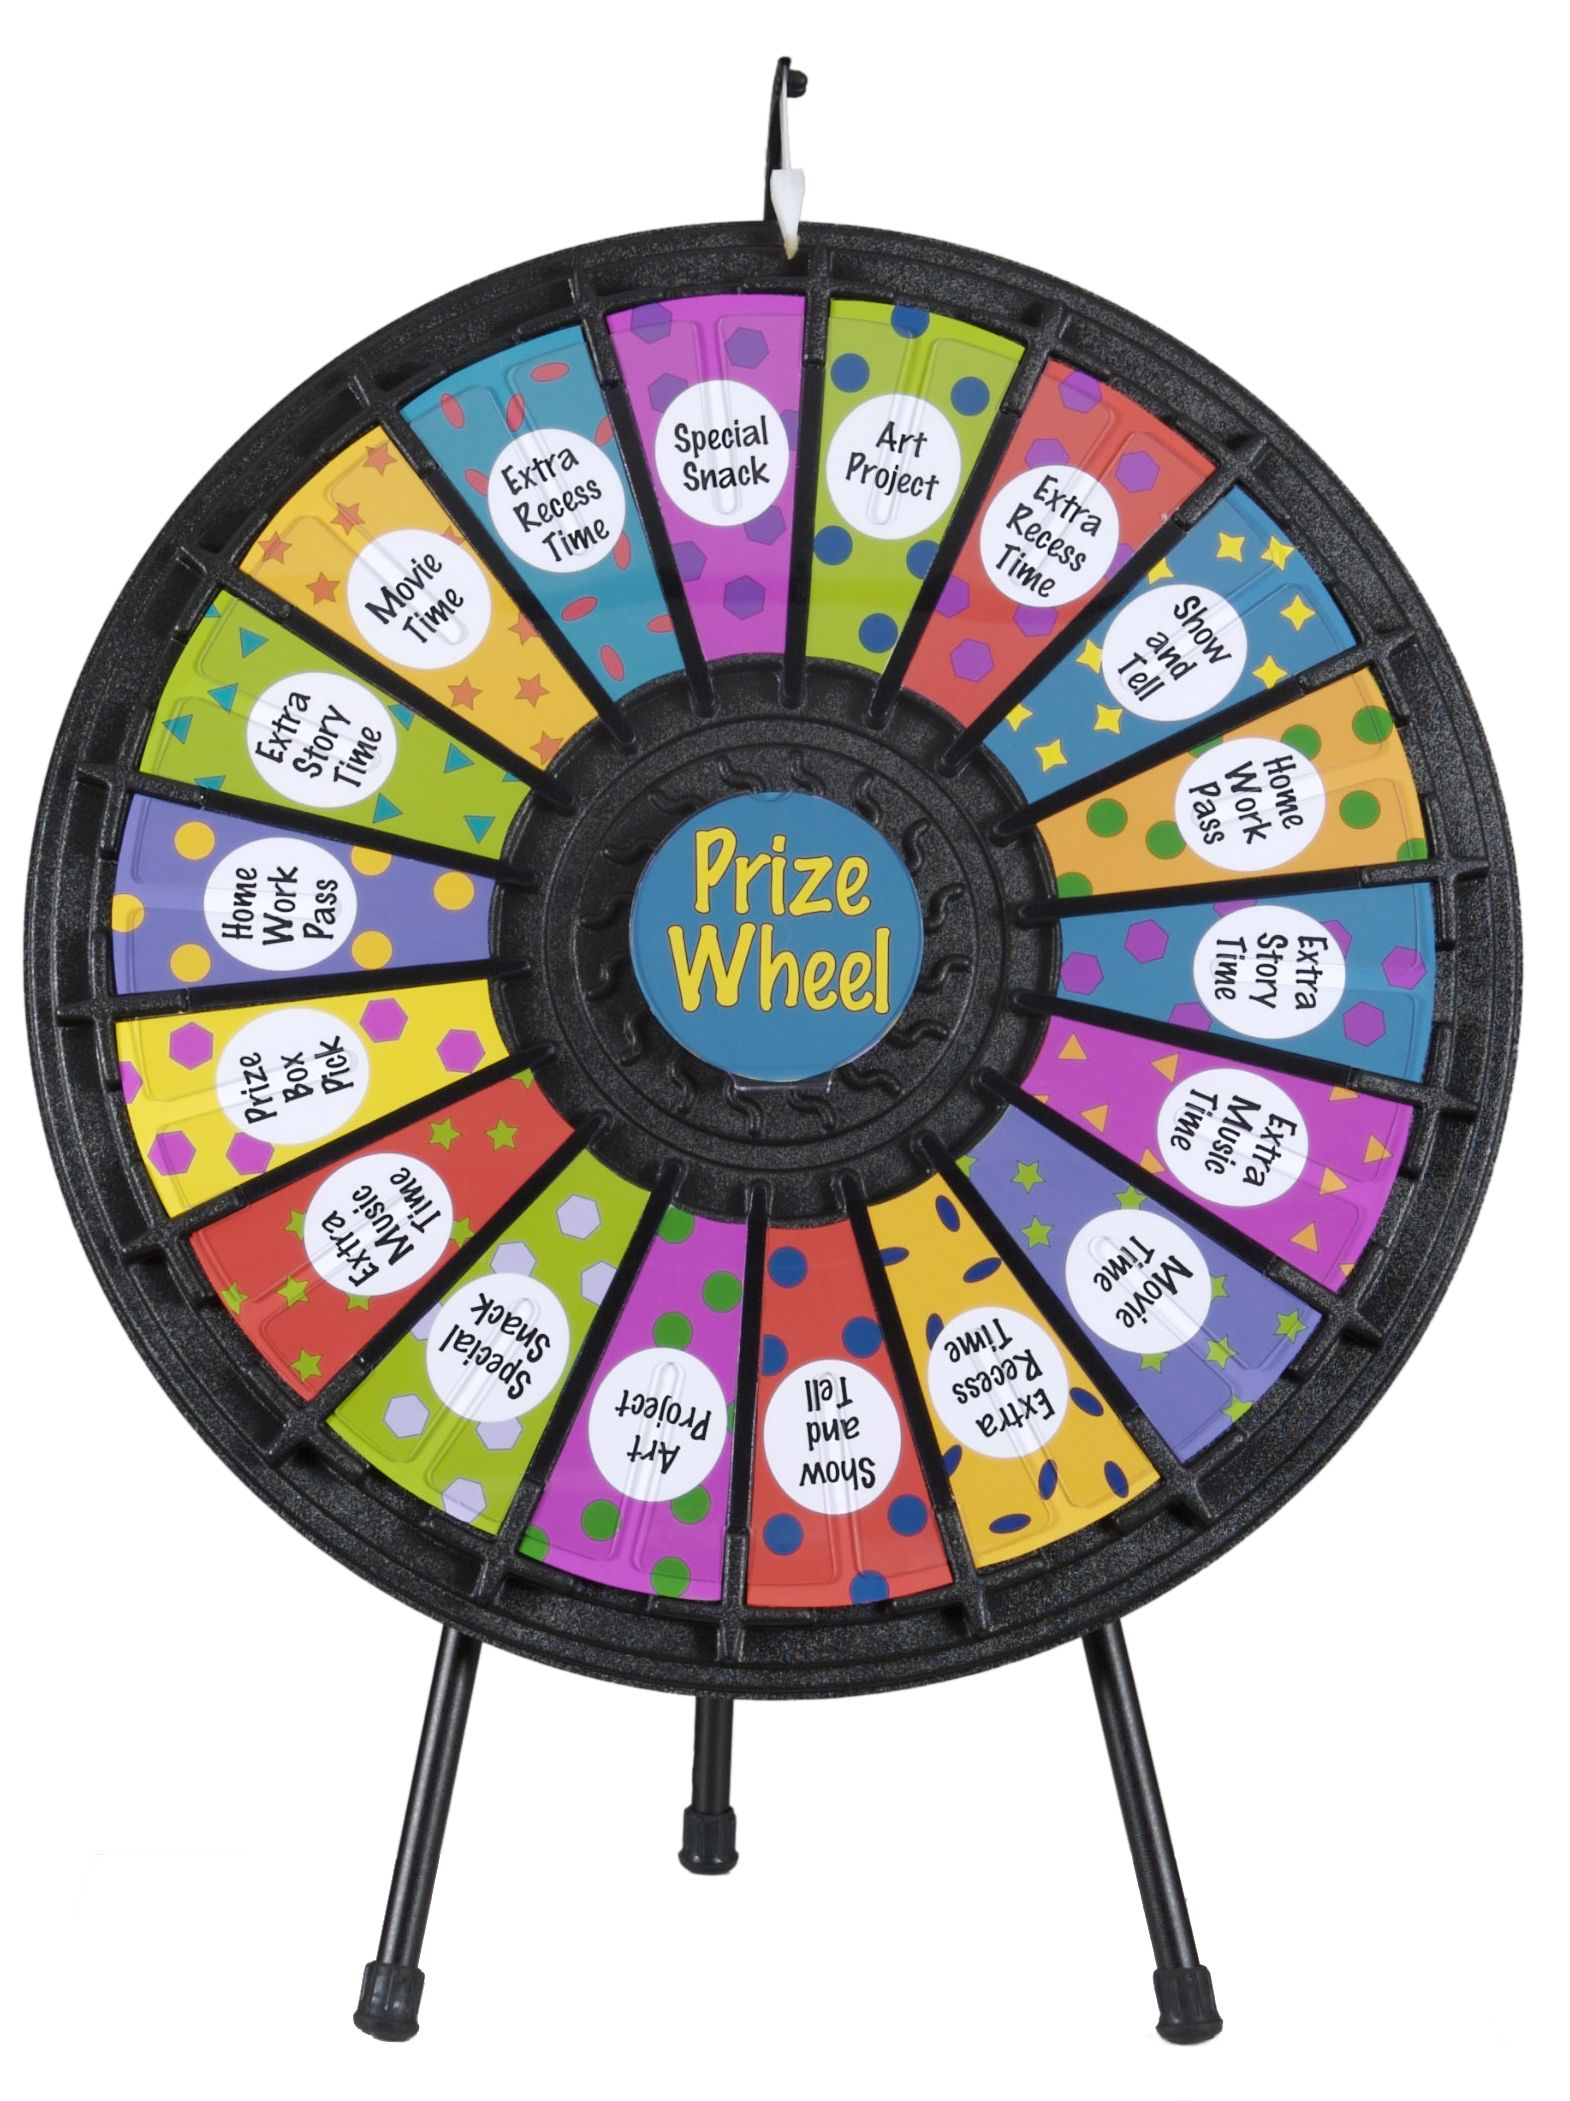 Prize Wheel With 18 Slots Printable Templates Countertop Black Prize Wheel Spinning Wheel Spinning Wheel For Sale